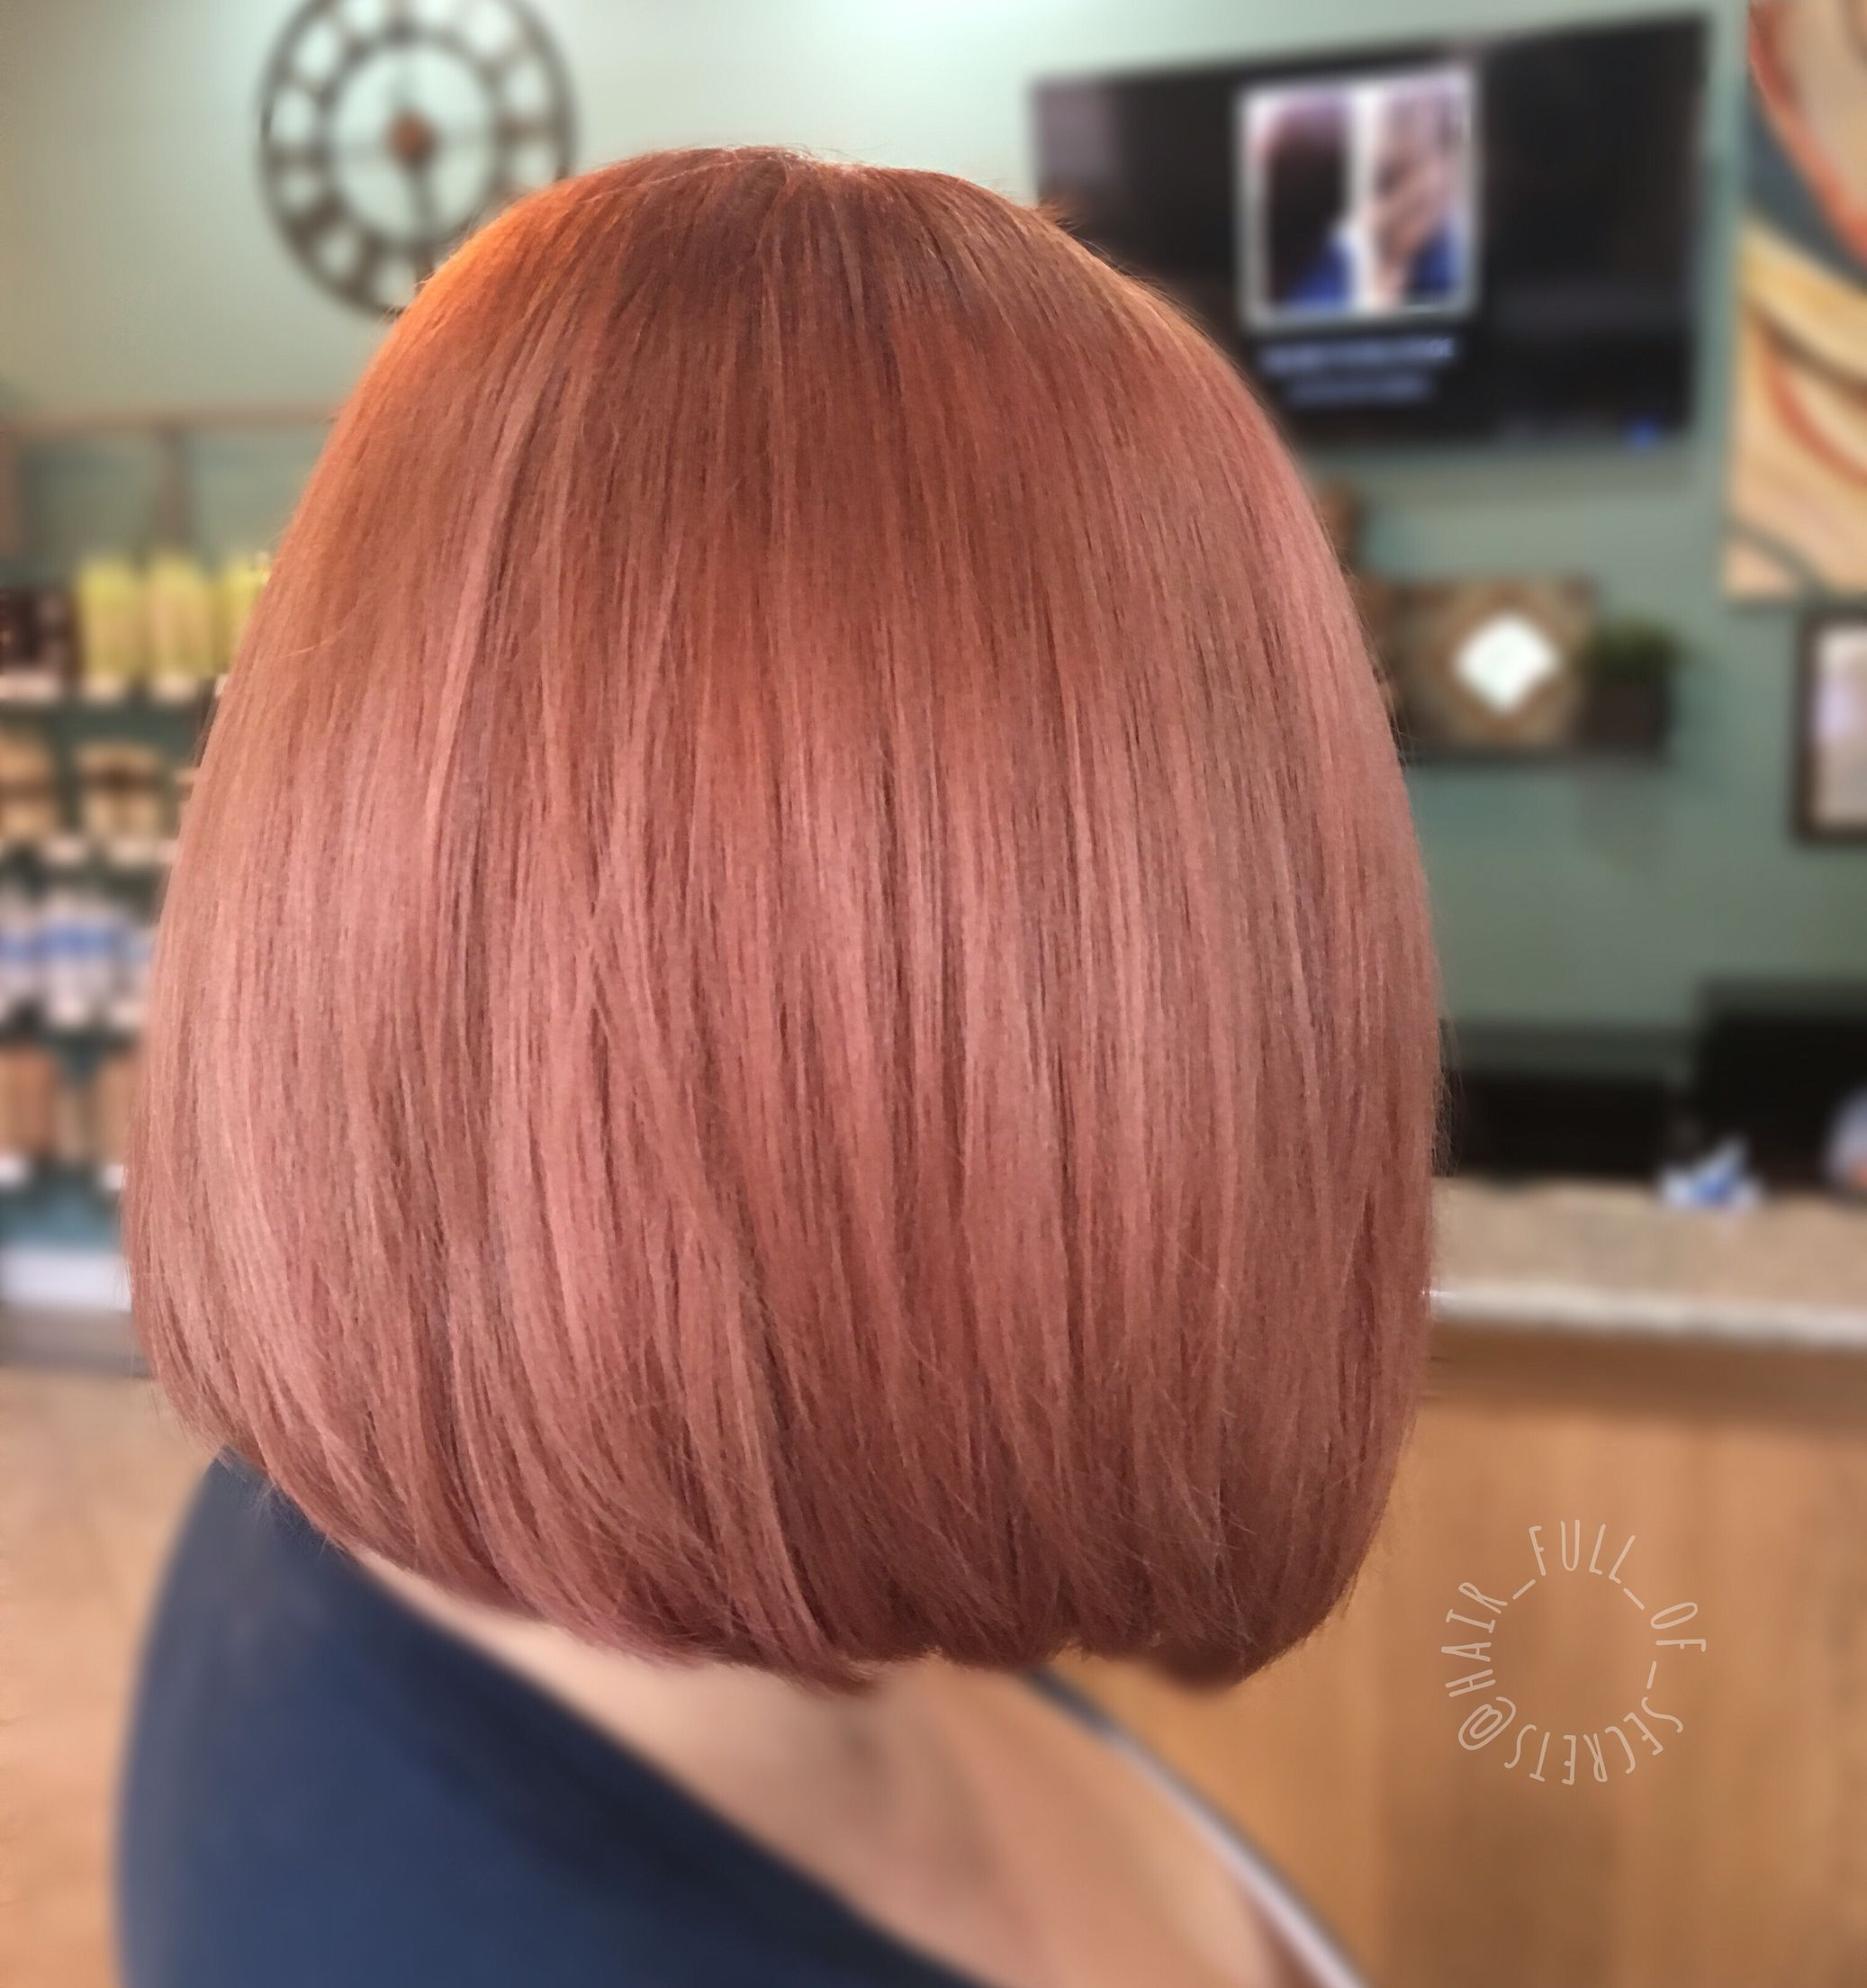 Rose gold hair by Melissa Carlucci • IG hair full of secrets